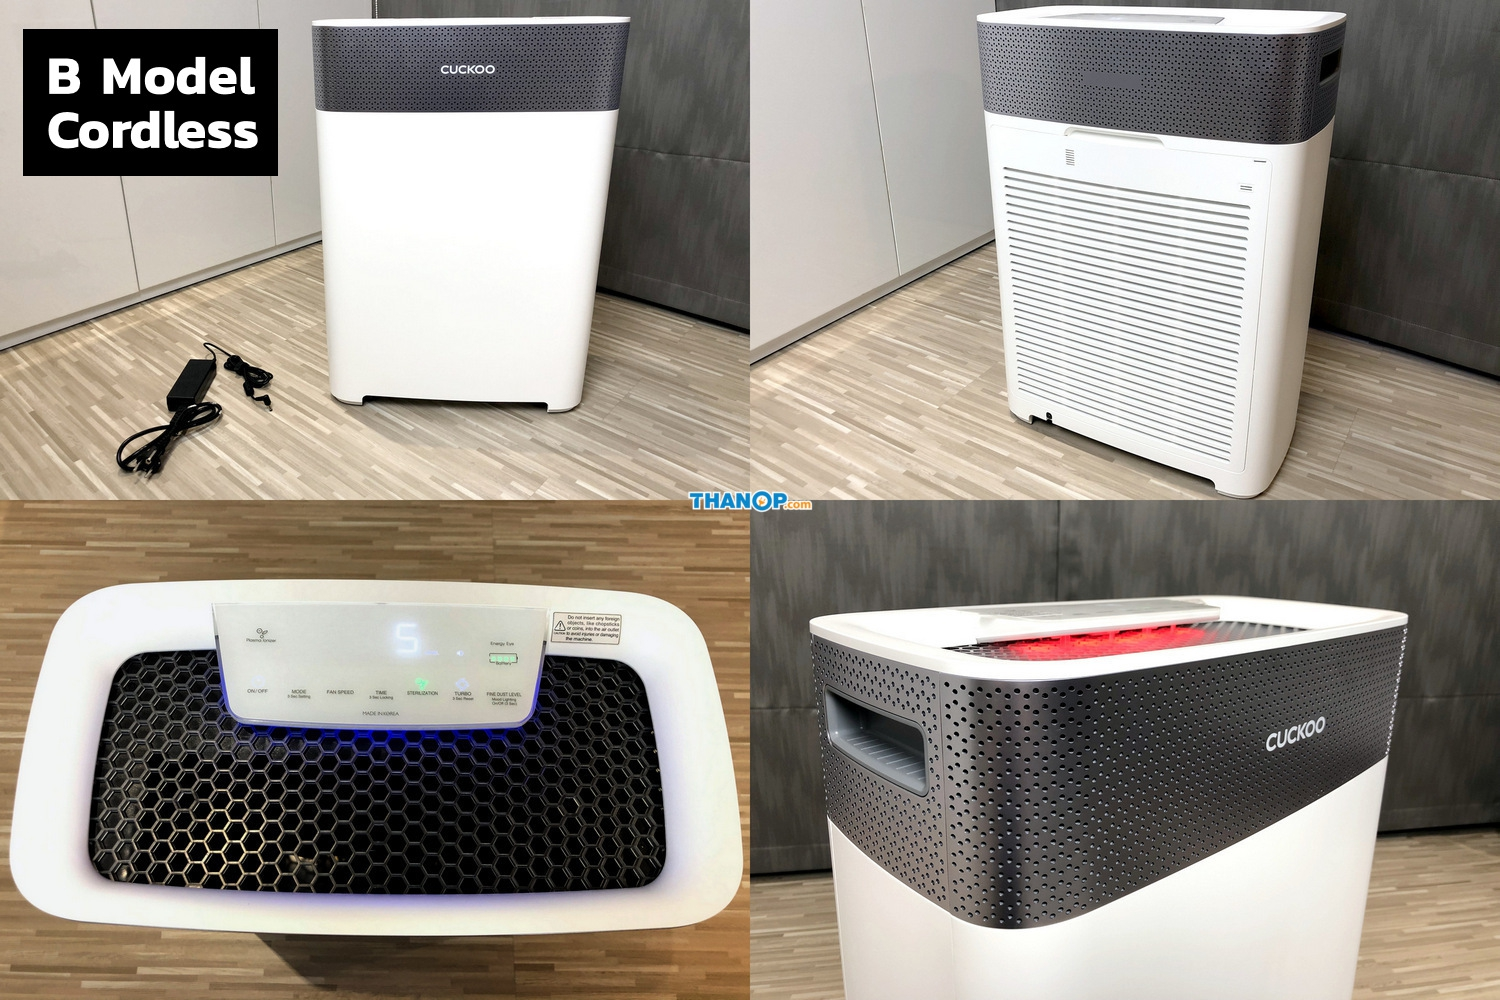 cuckoo-air-purifier-b-model-cordless-body-view-all